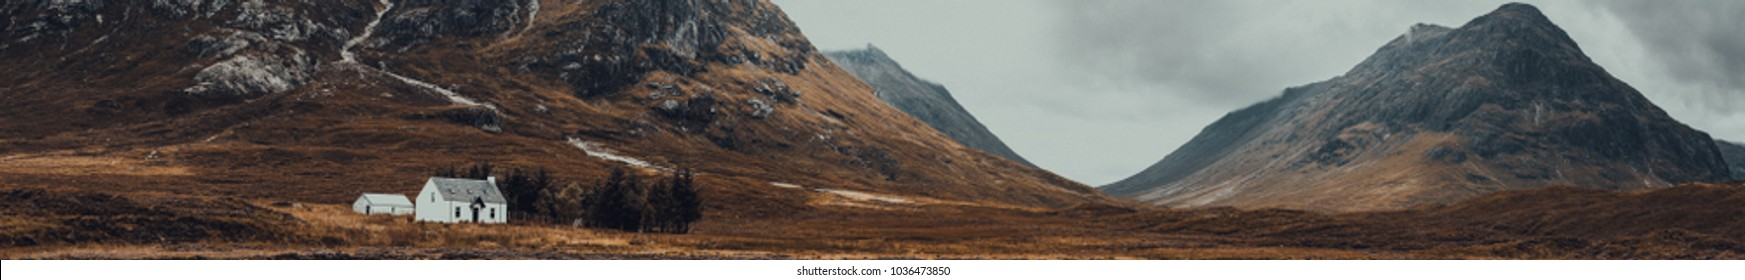 Panorama landscape view of Glencoe area with a white cottage and mountains in the plane of view